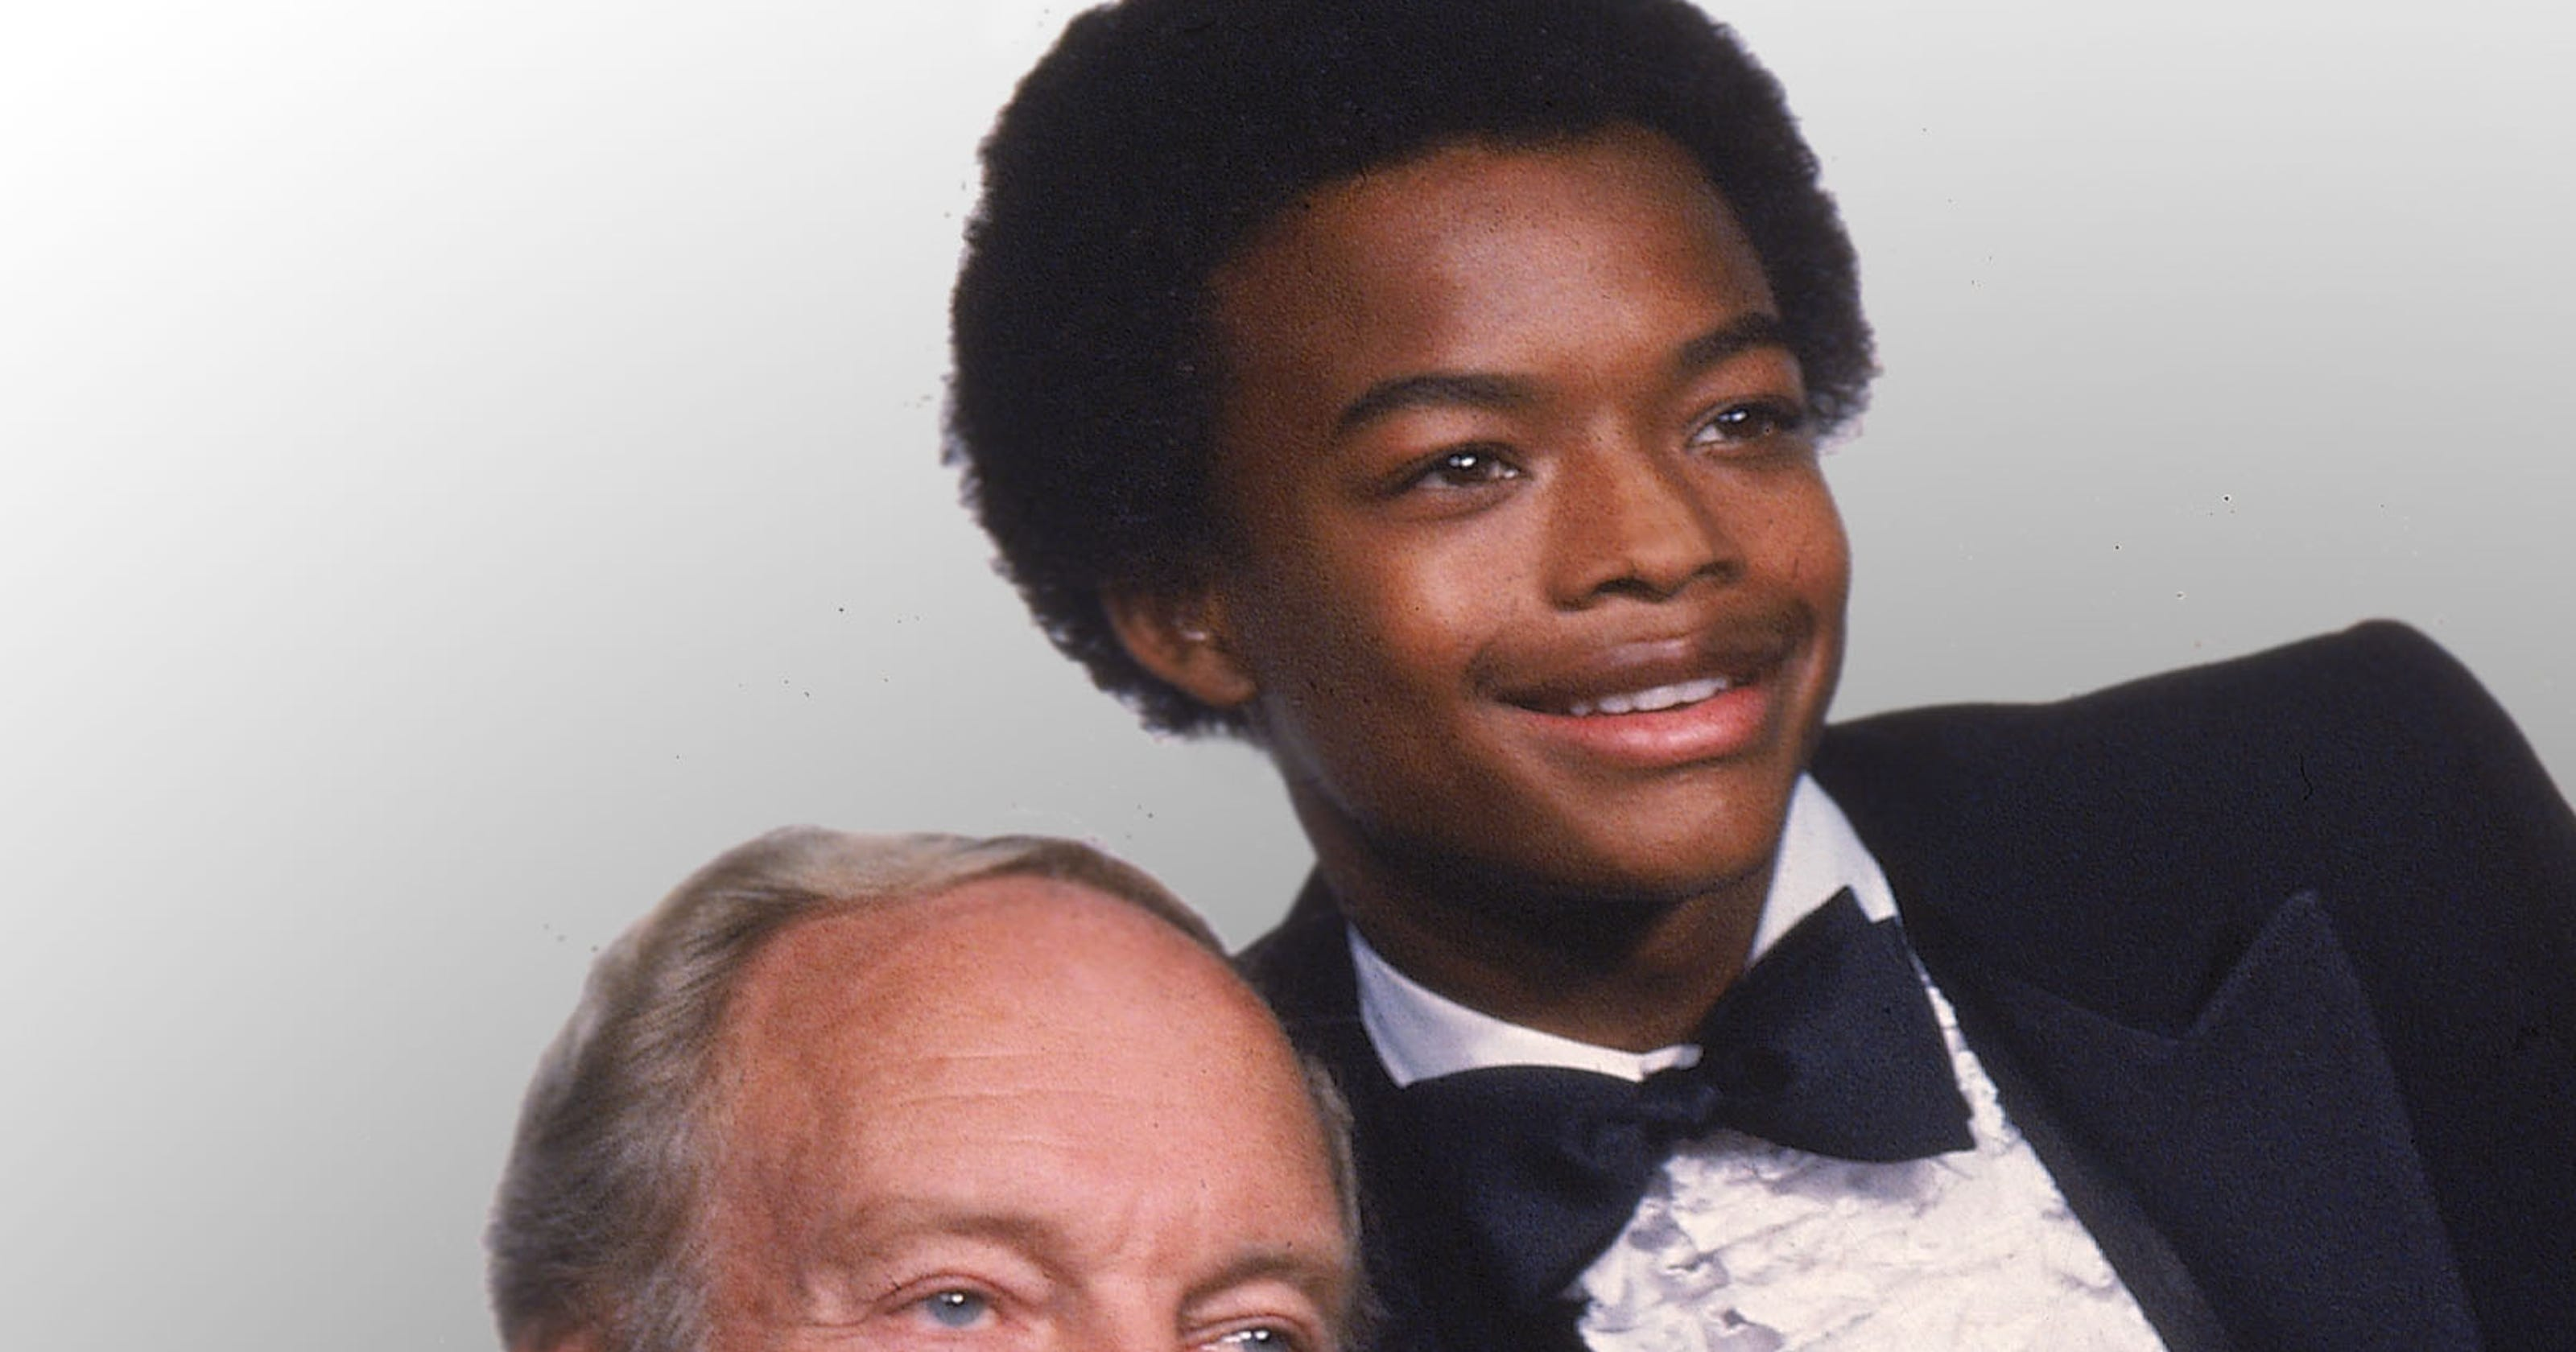 Todd Bridges now the last living member of 'Diff'rent